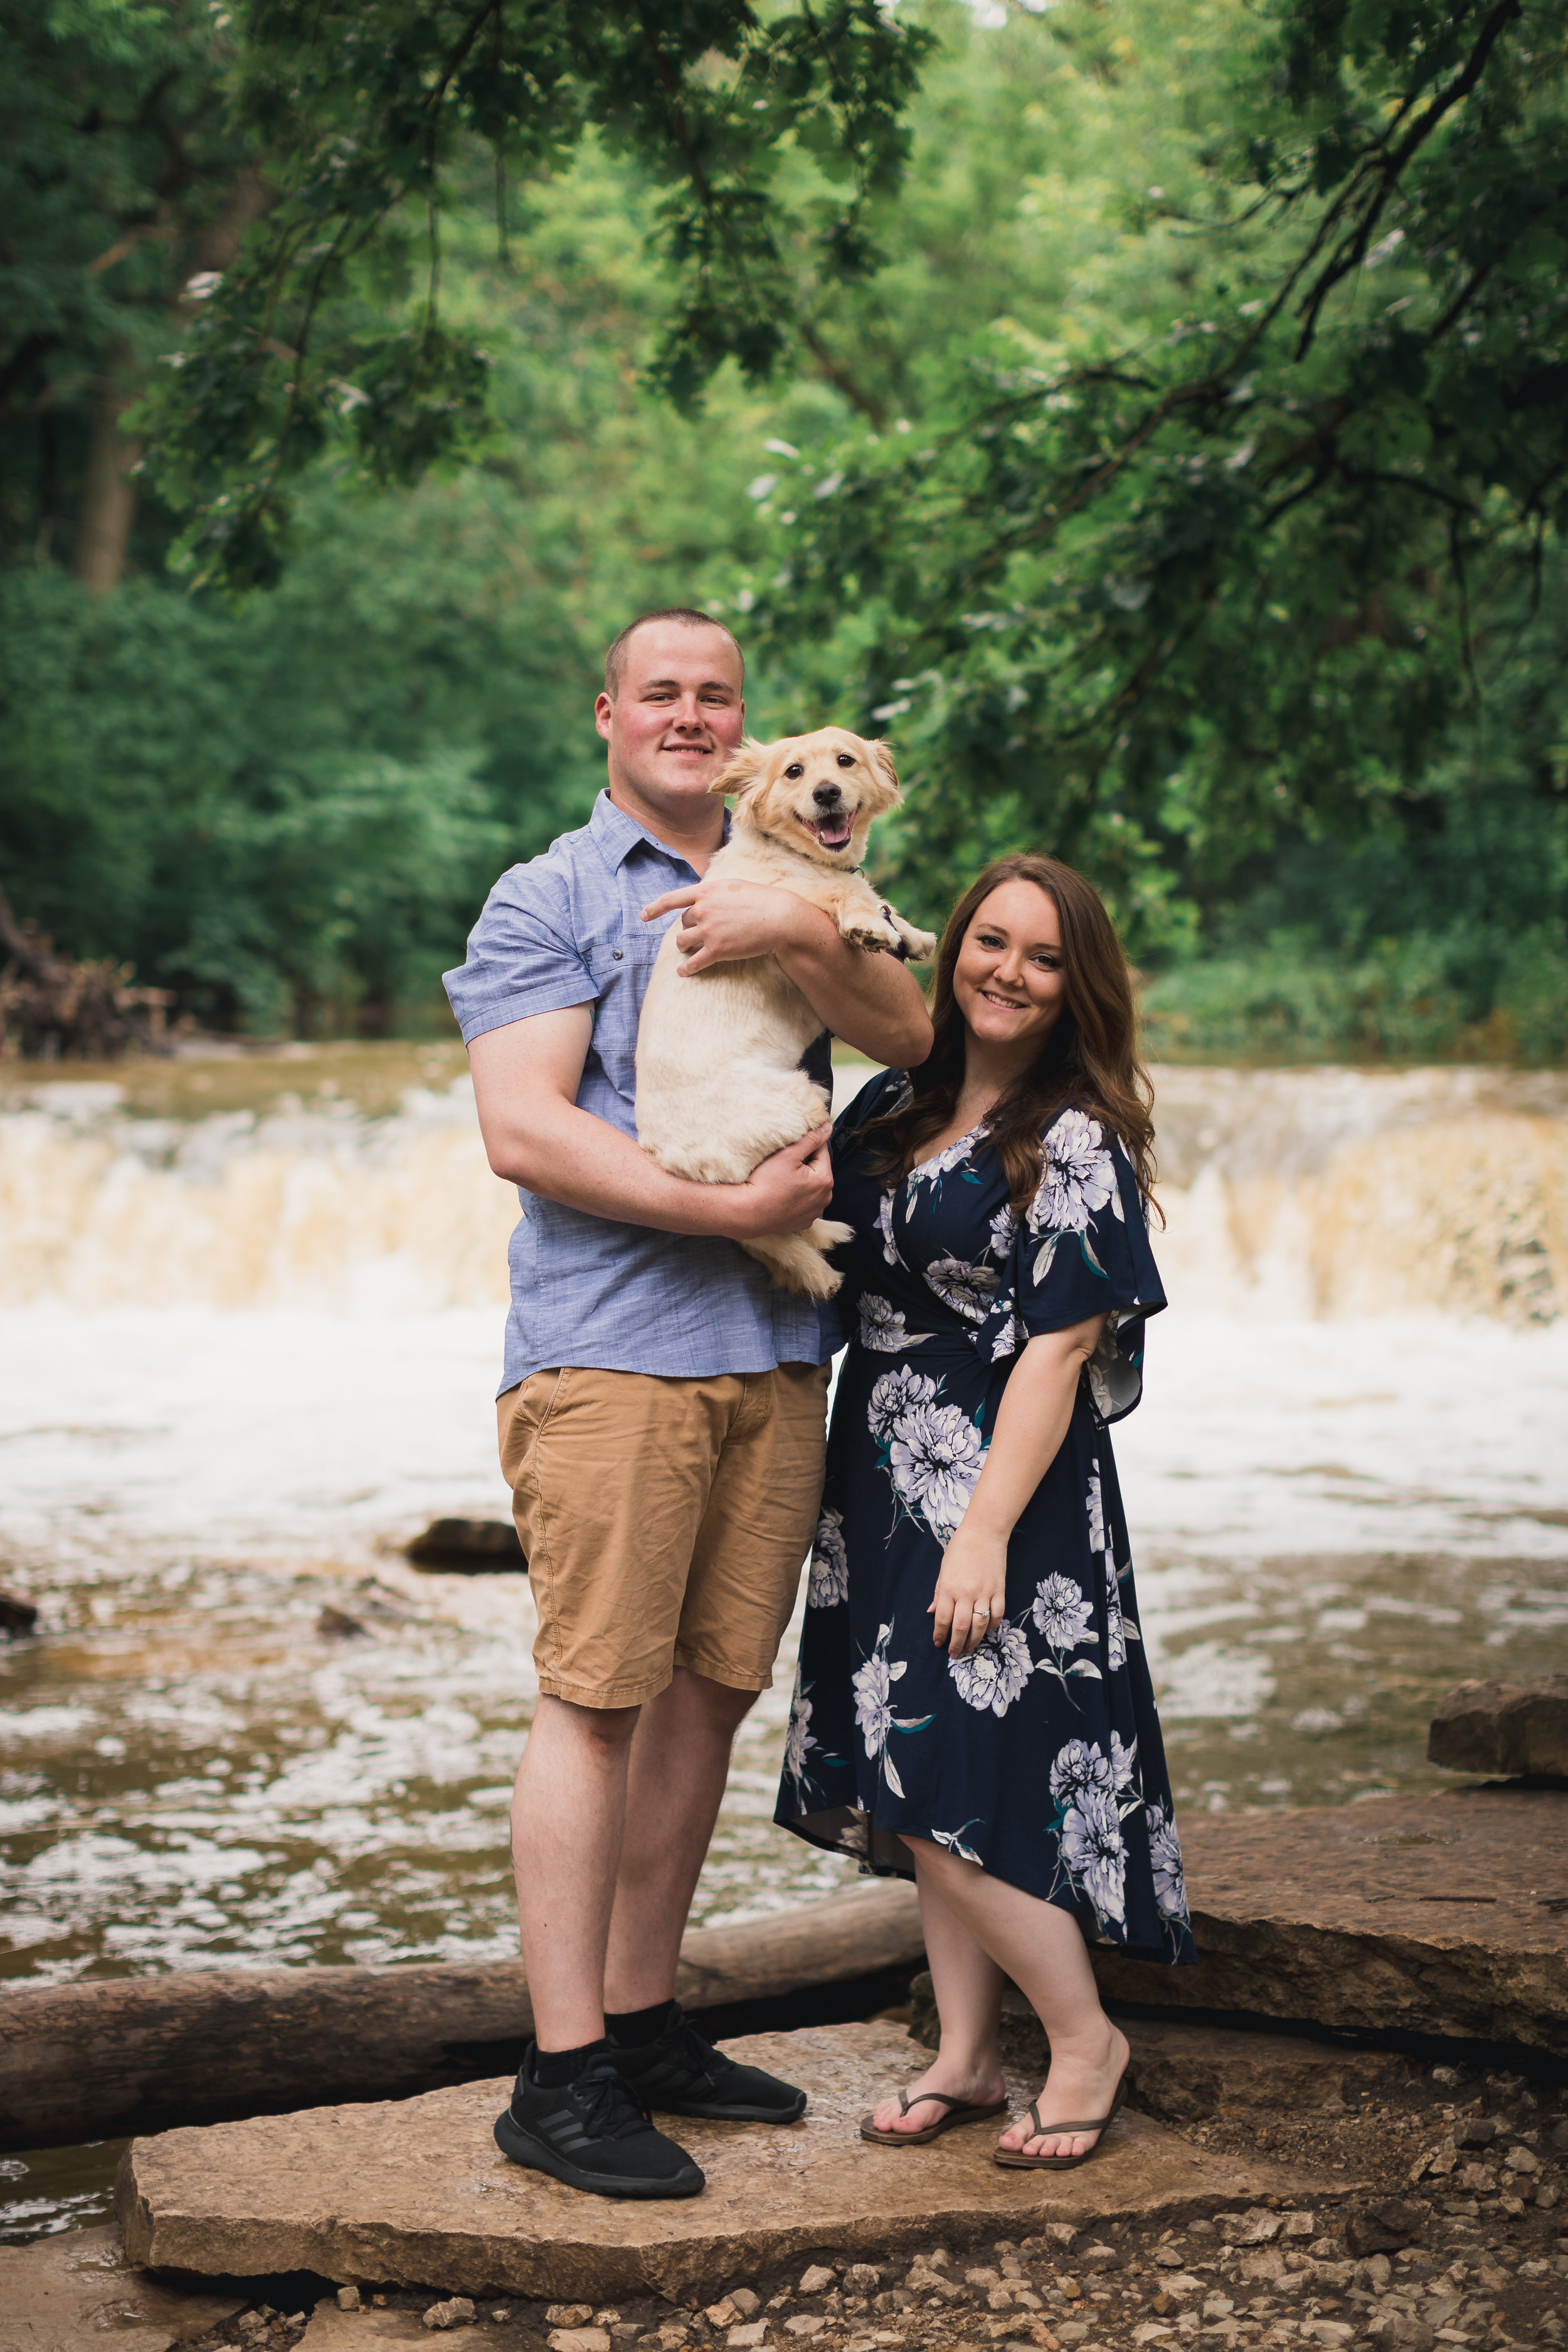 20180623_lauren_and_justin_engagement_08_5R3A0677.jpg